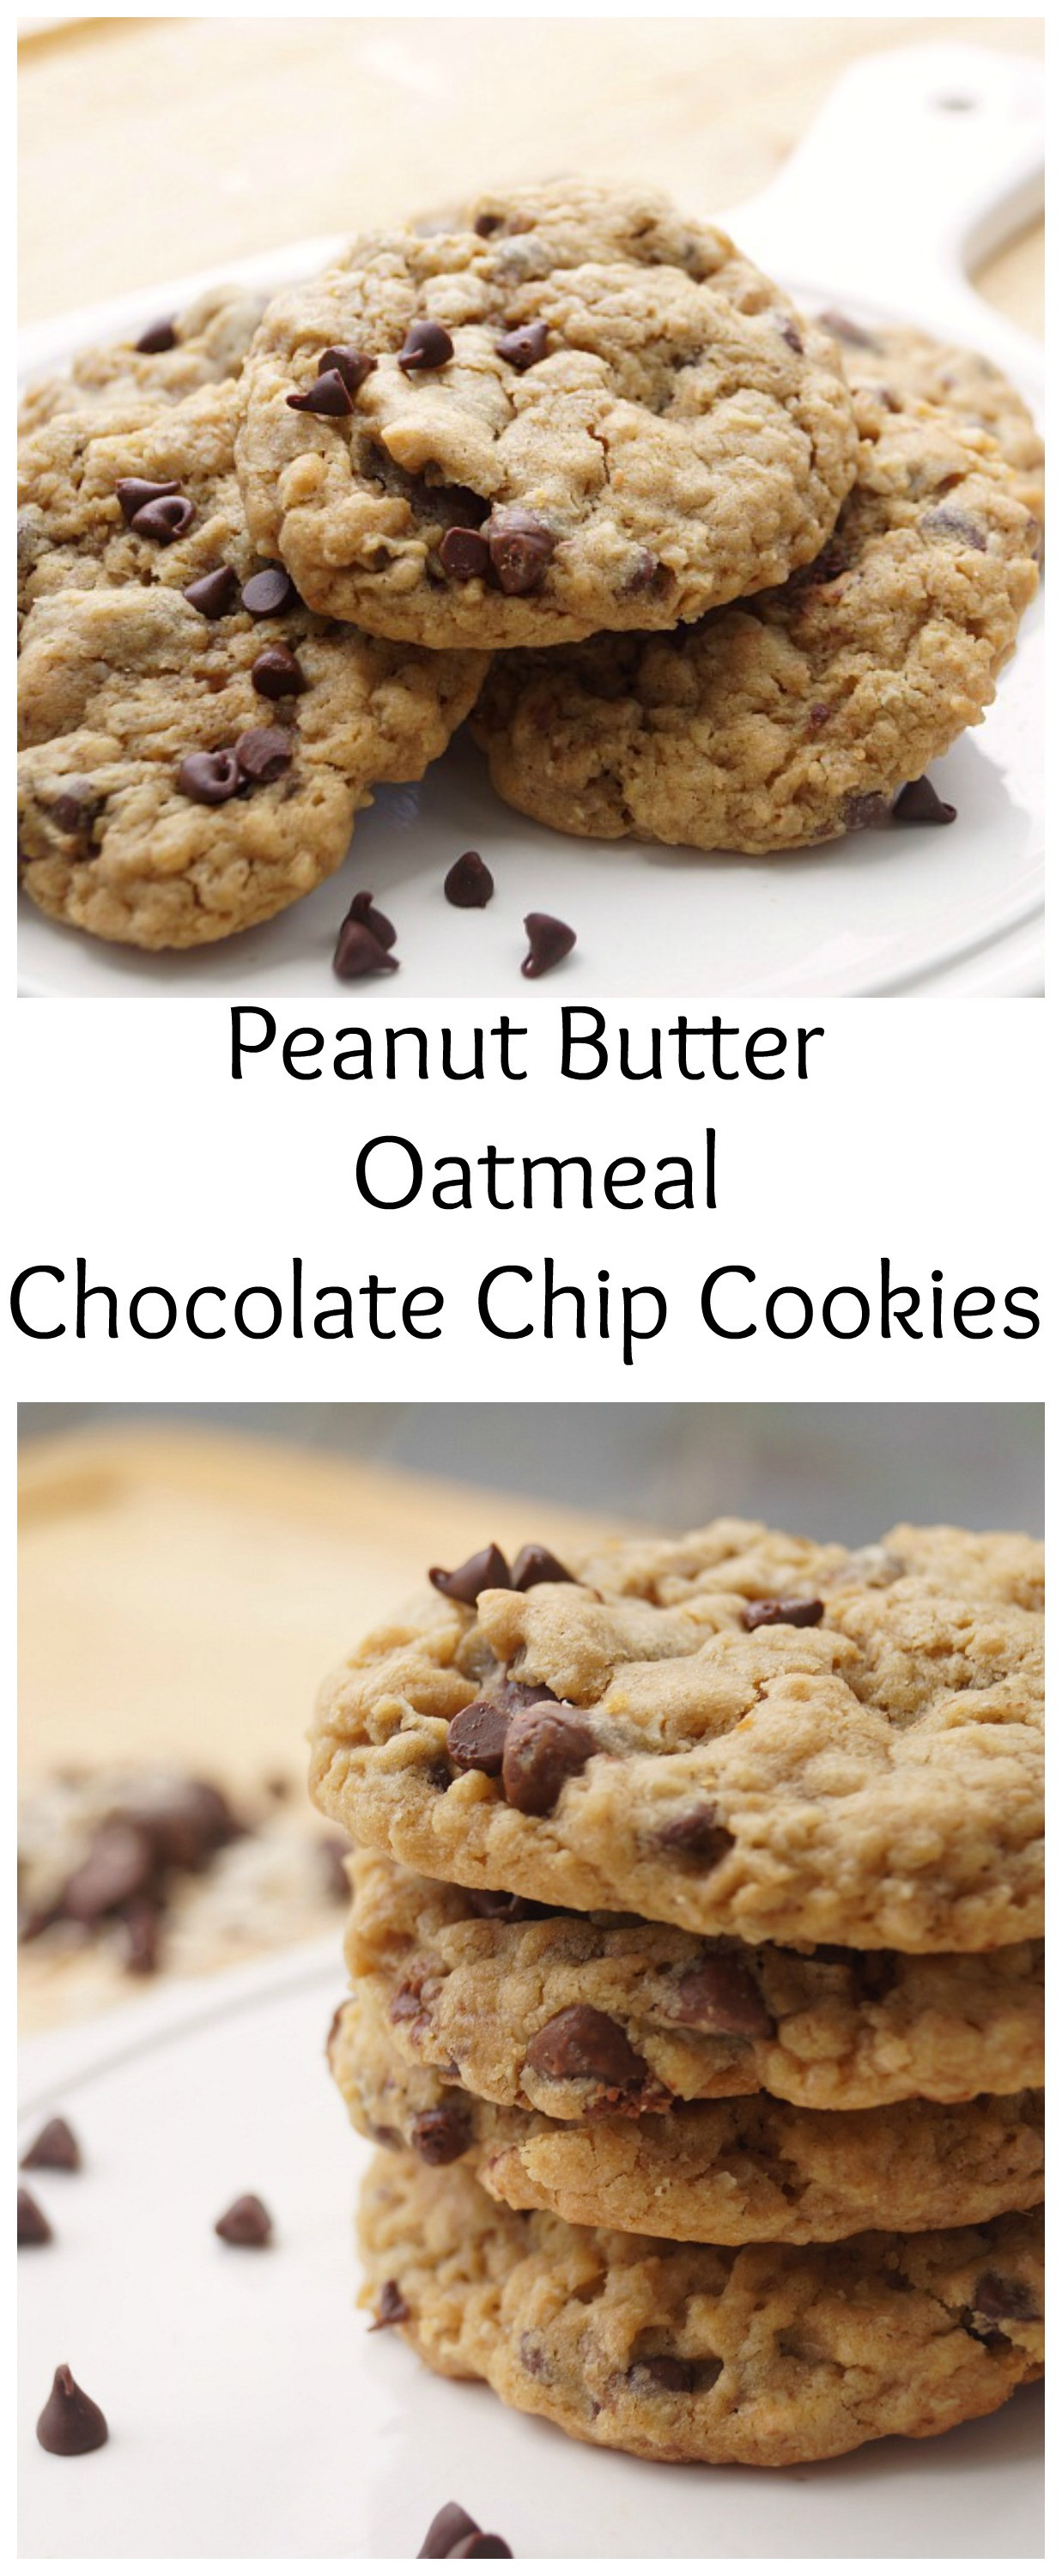 Healthy Oatmeal Chocolate Chip Cookies No Butter  Peanut Butter Oatmeal Chocolate Chip Cookies